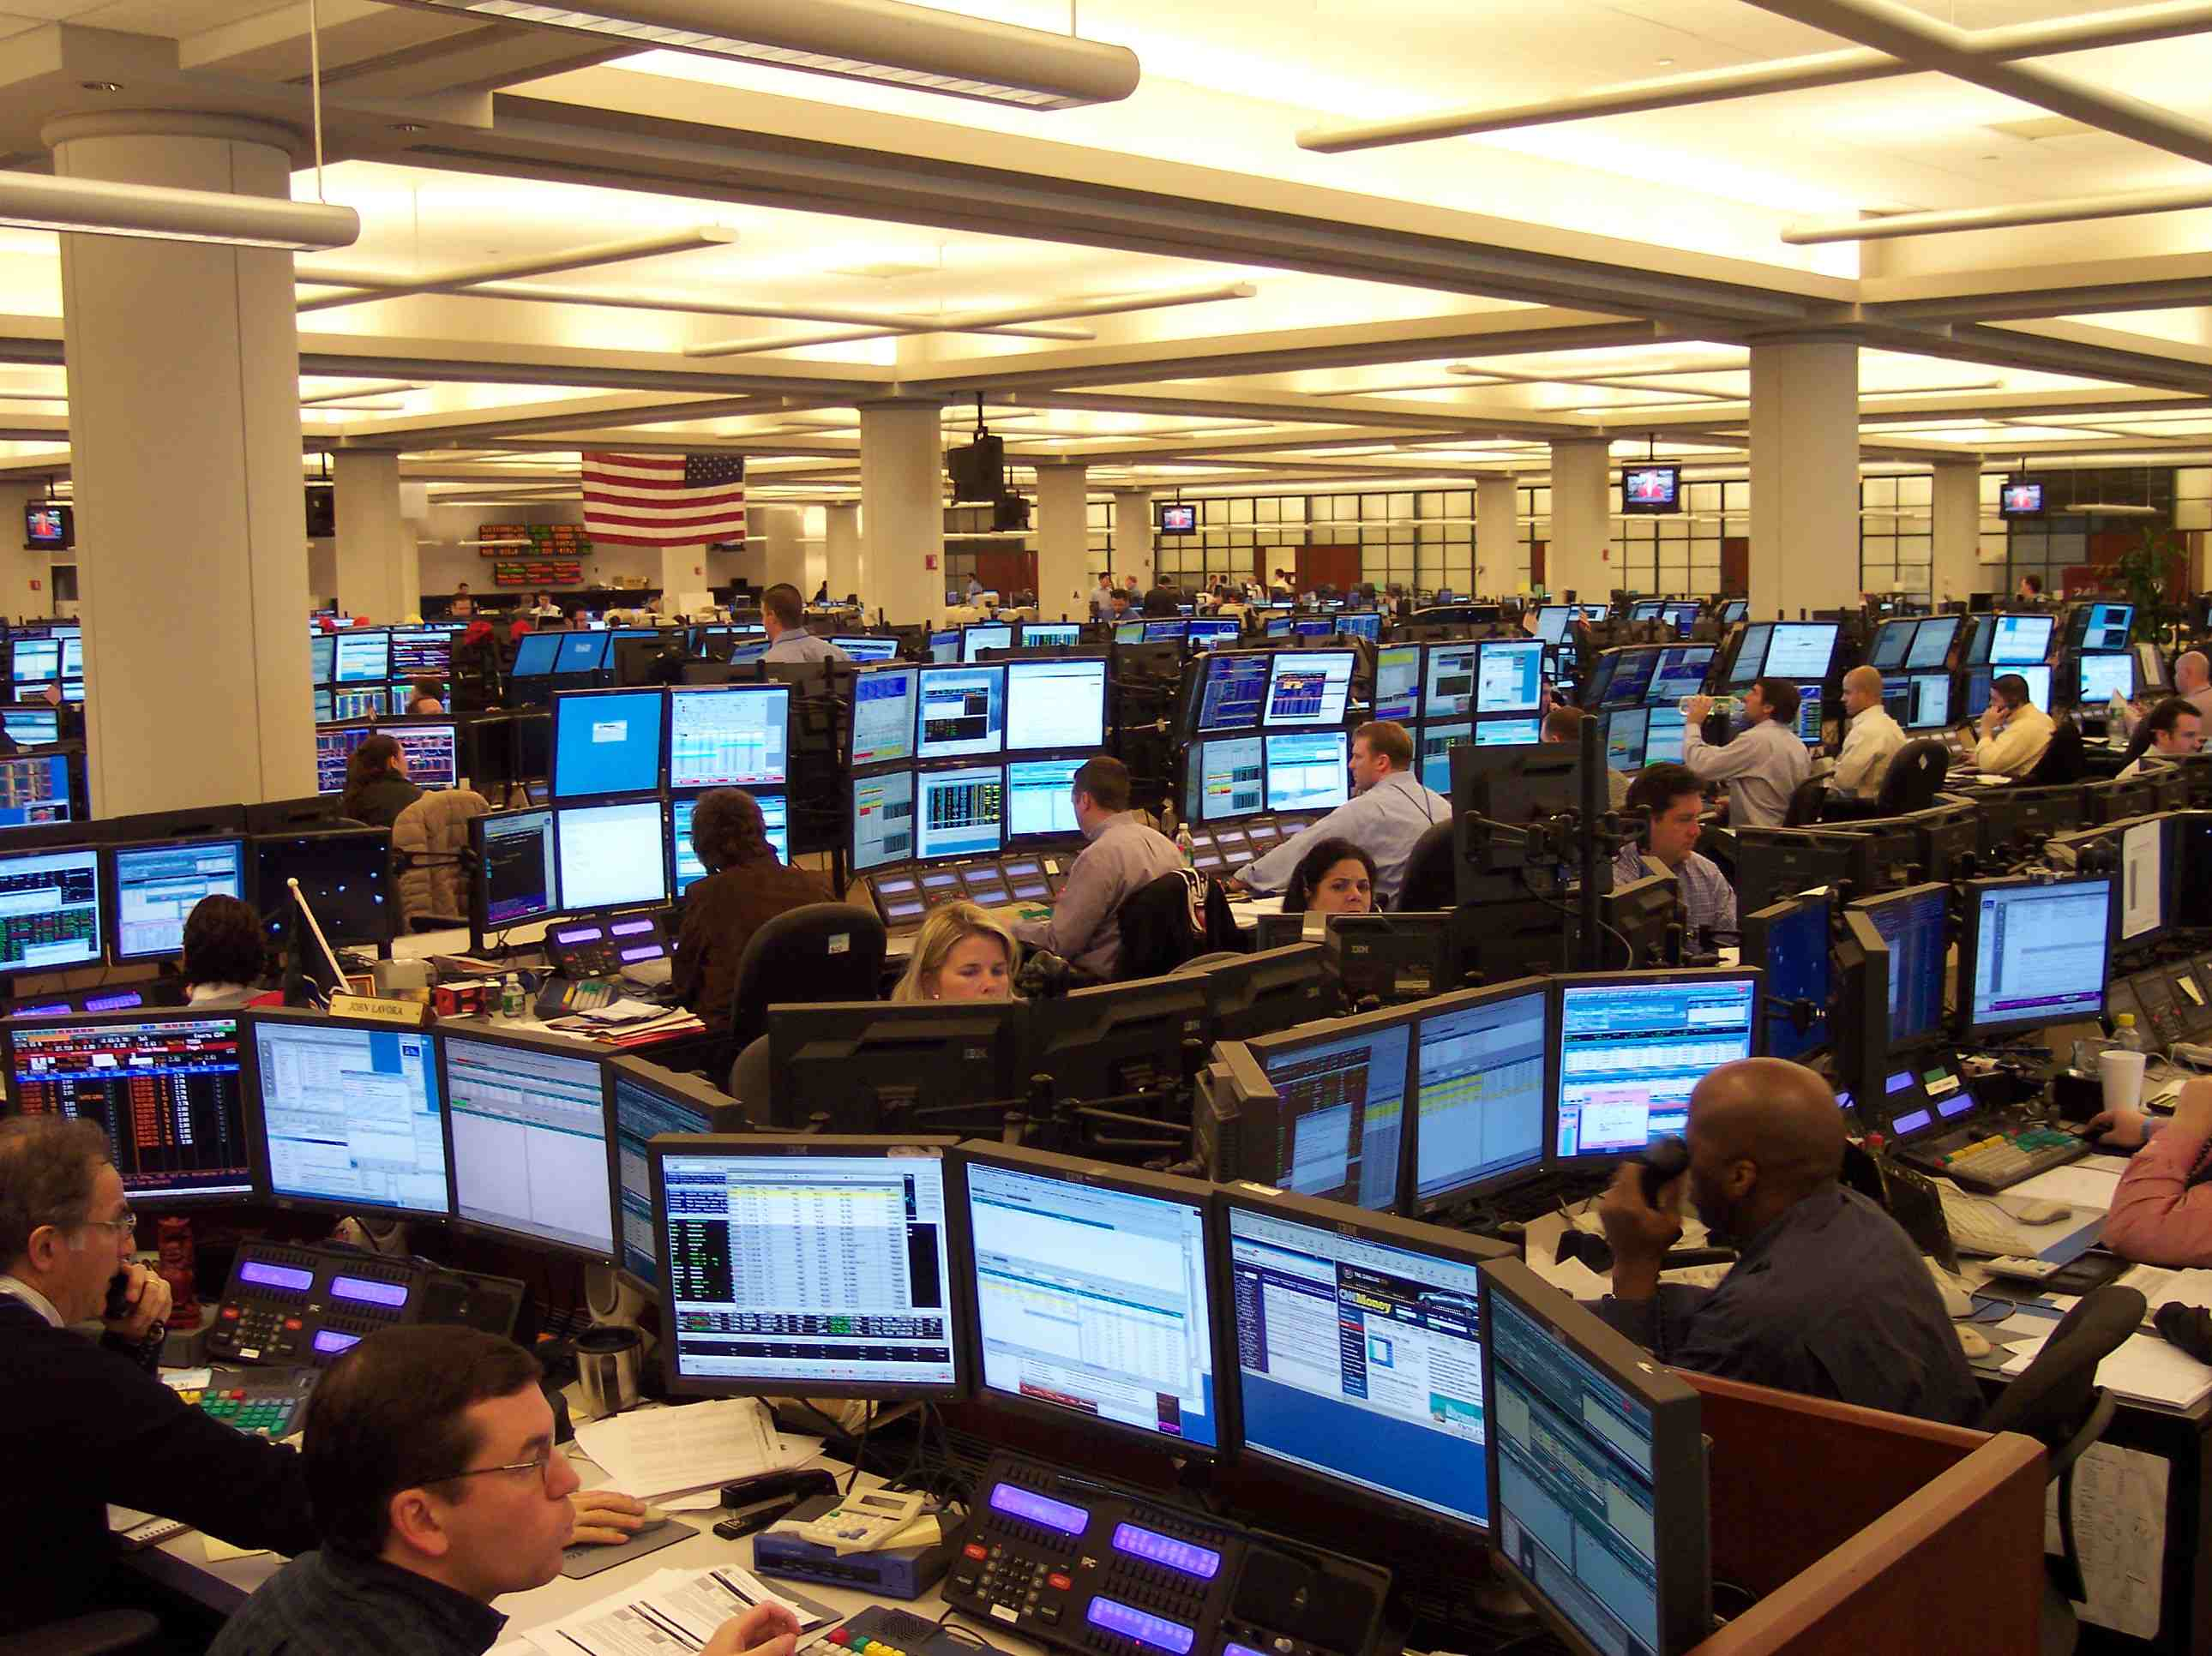 File:A1 Houston Office Oil Traders on Monday.jpg ...